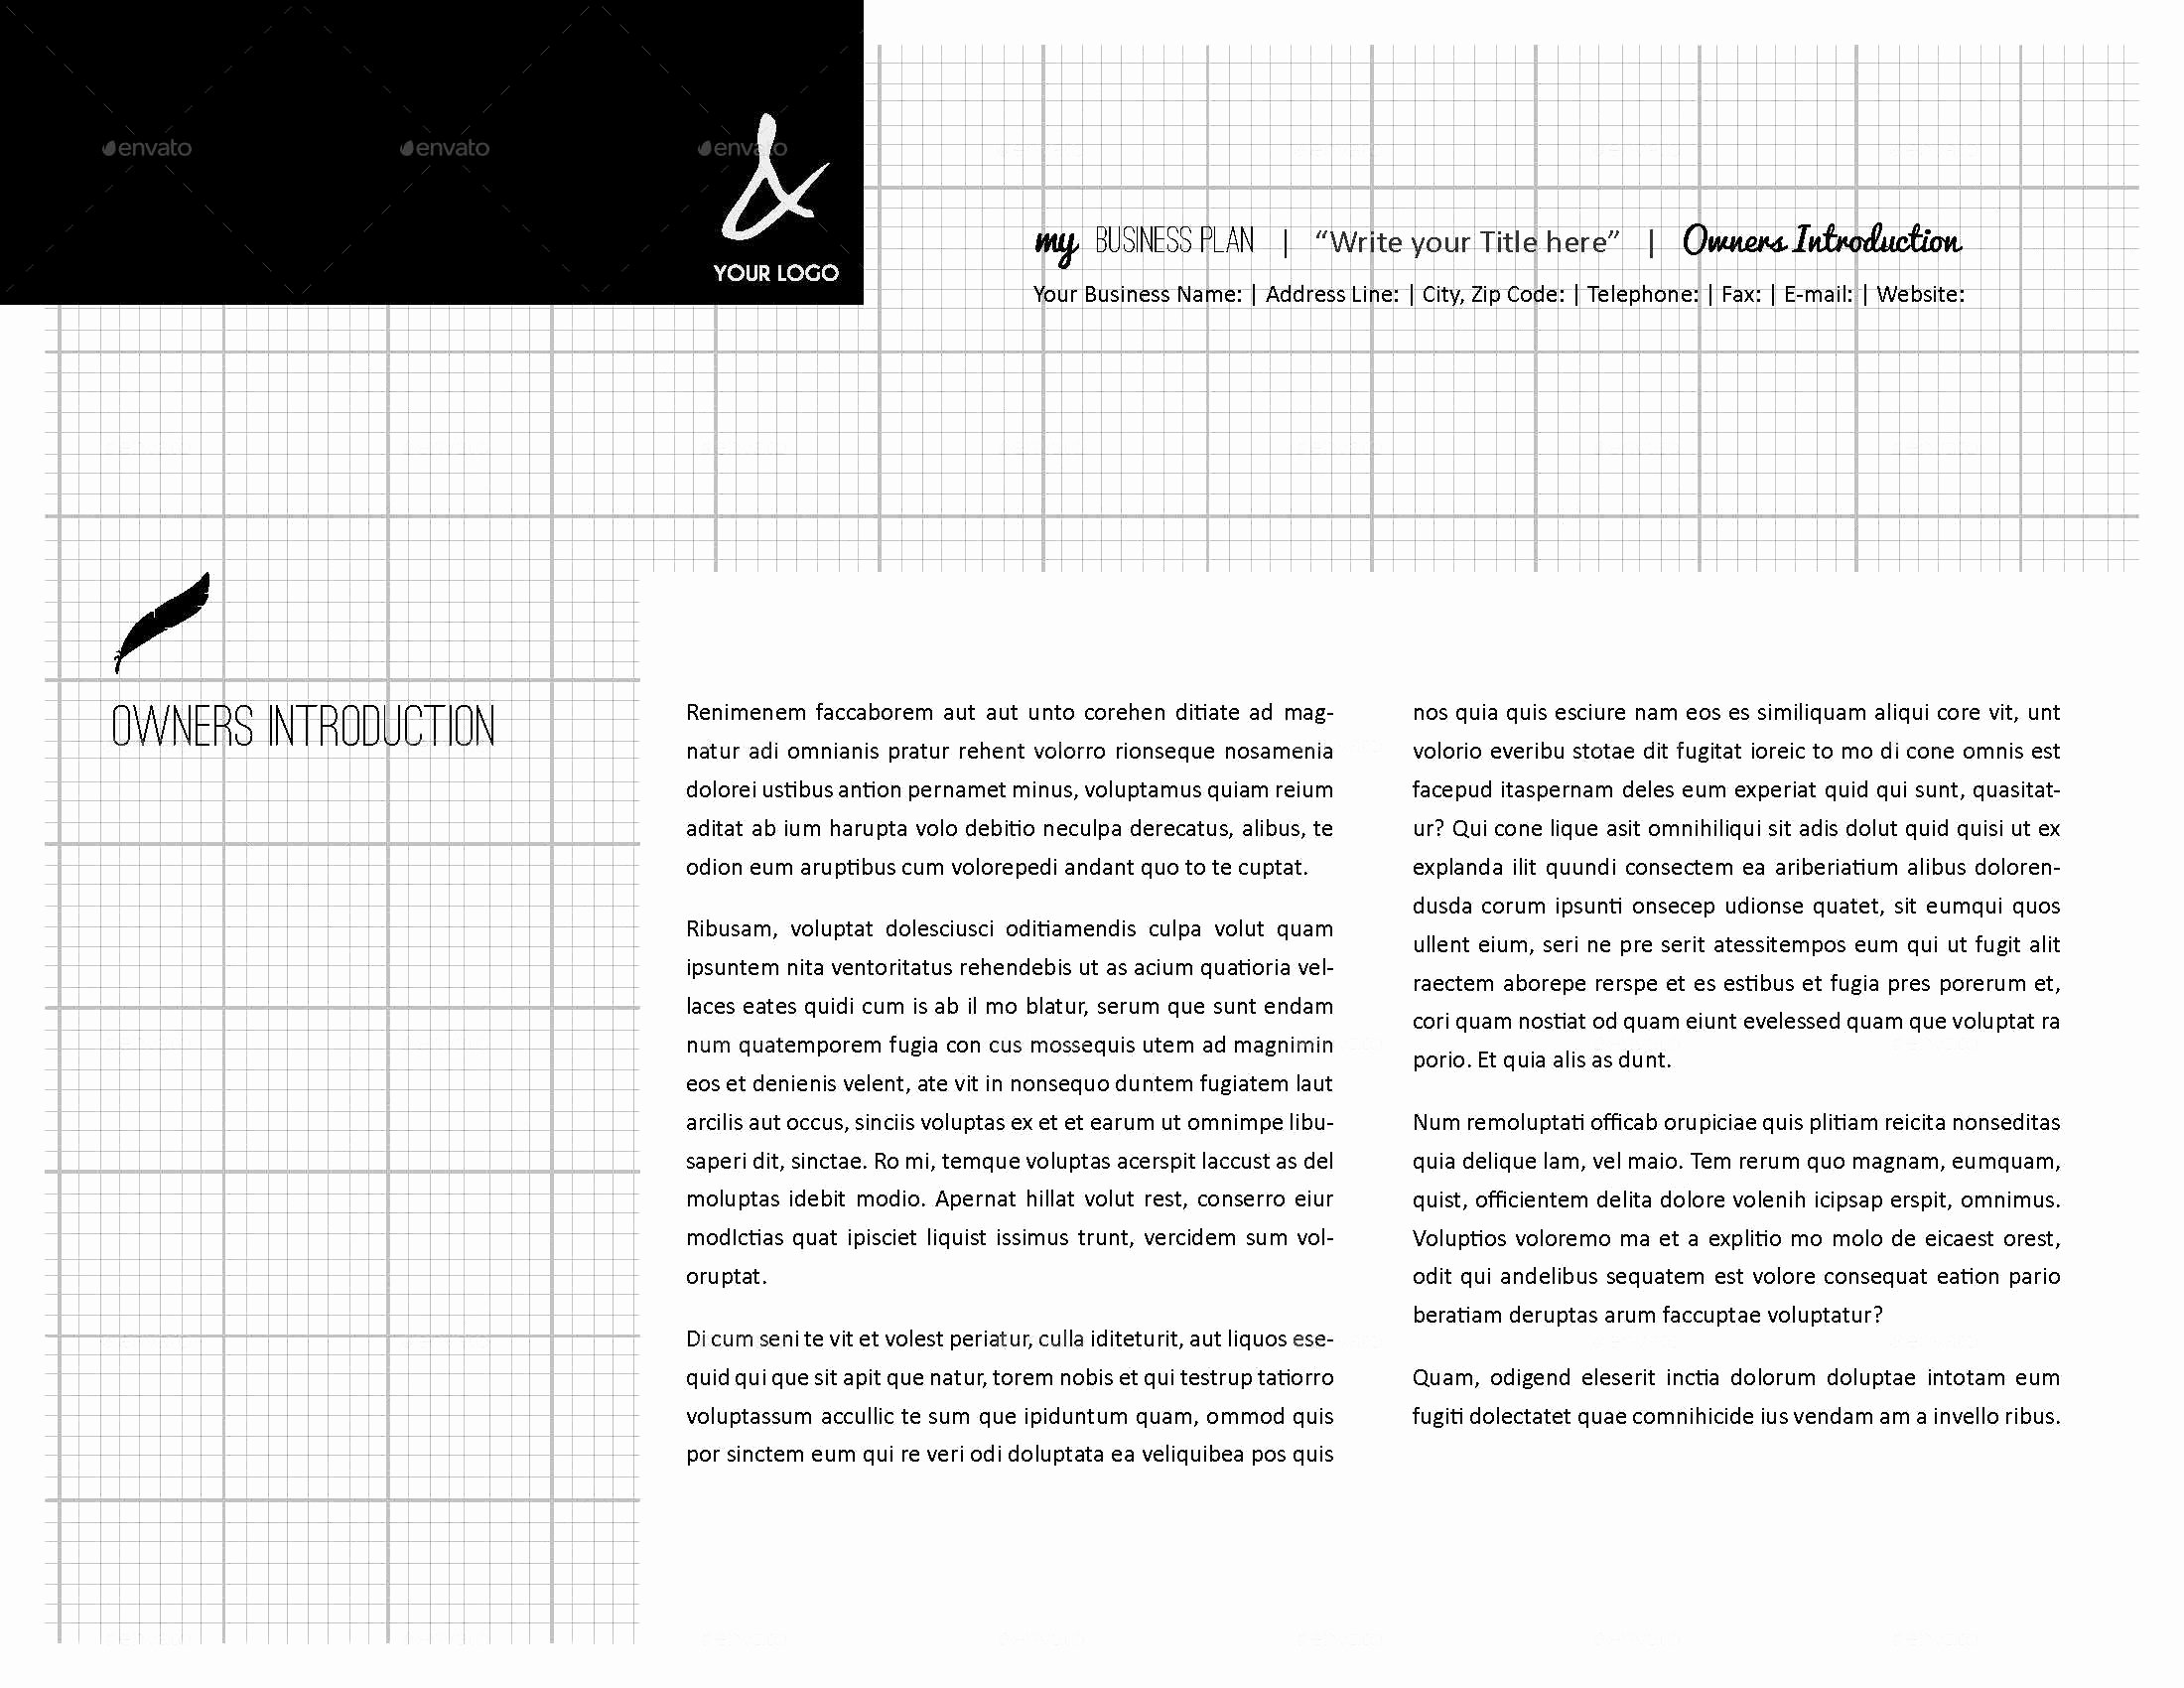 Agile Release Plan Template New Clean Gallery Agile Release Plan Template